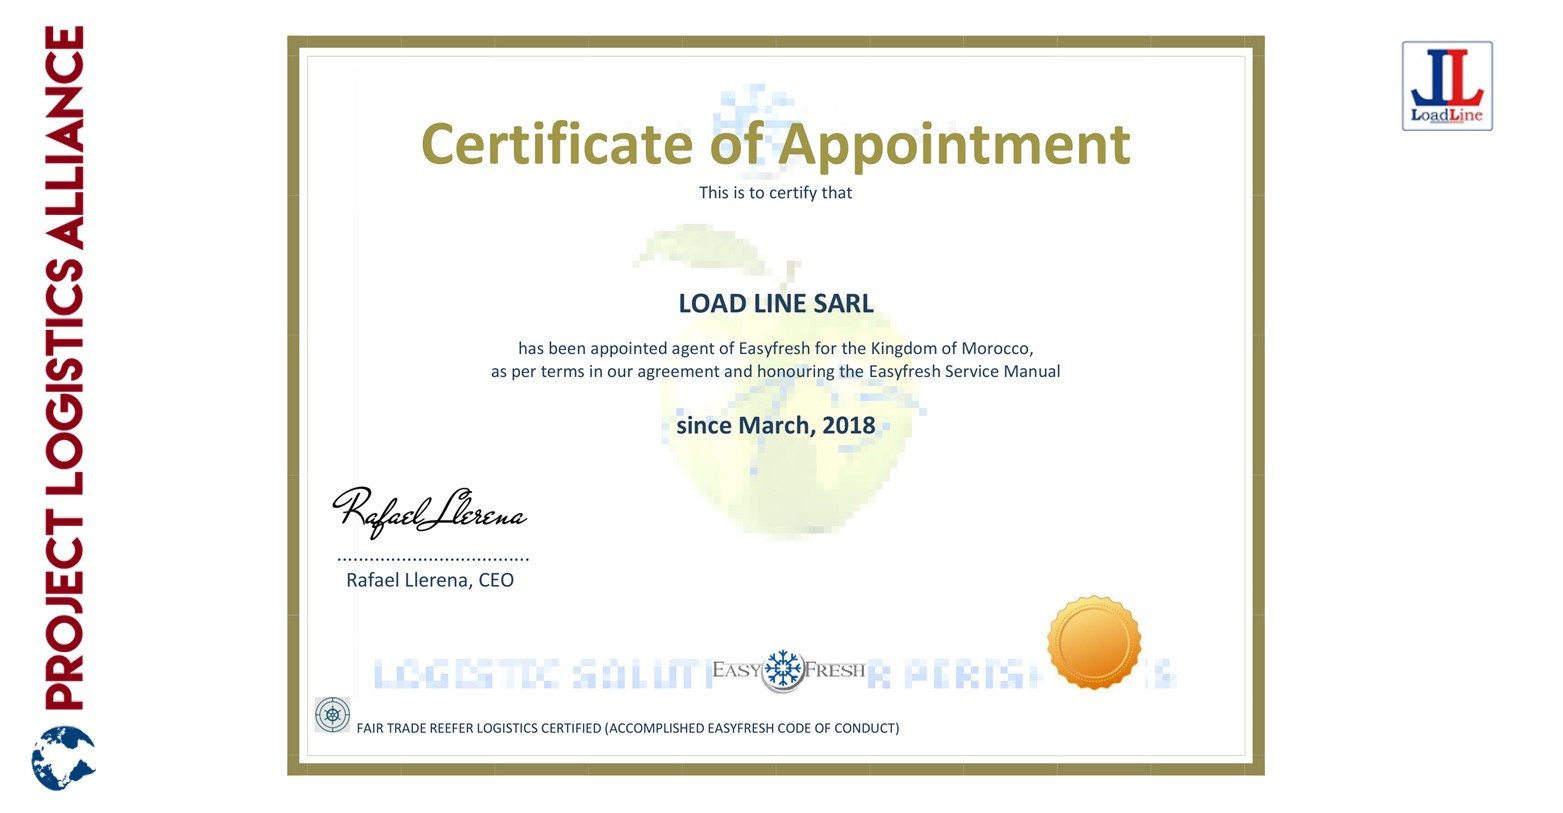 LoadLine is expert in reefer and cold-chain shipments